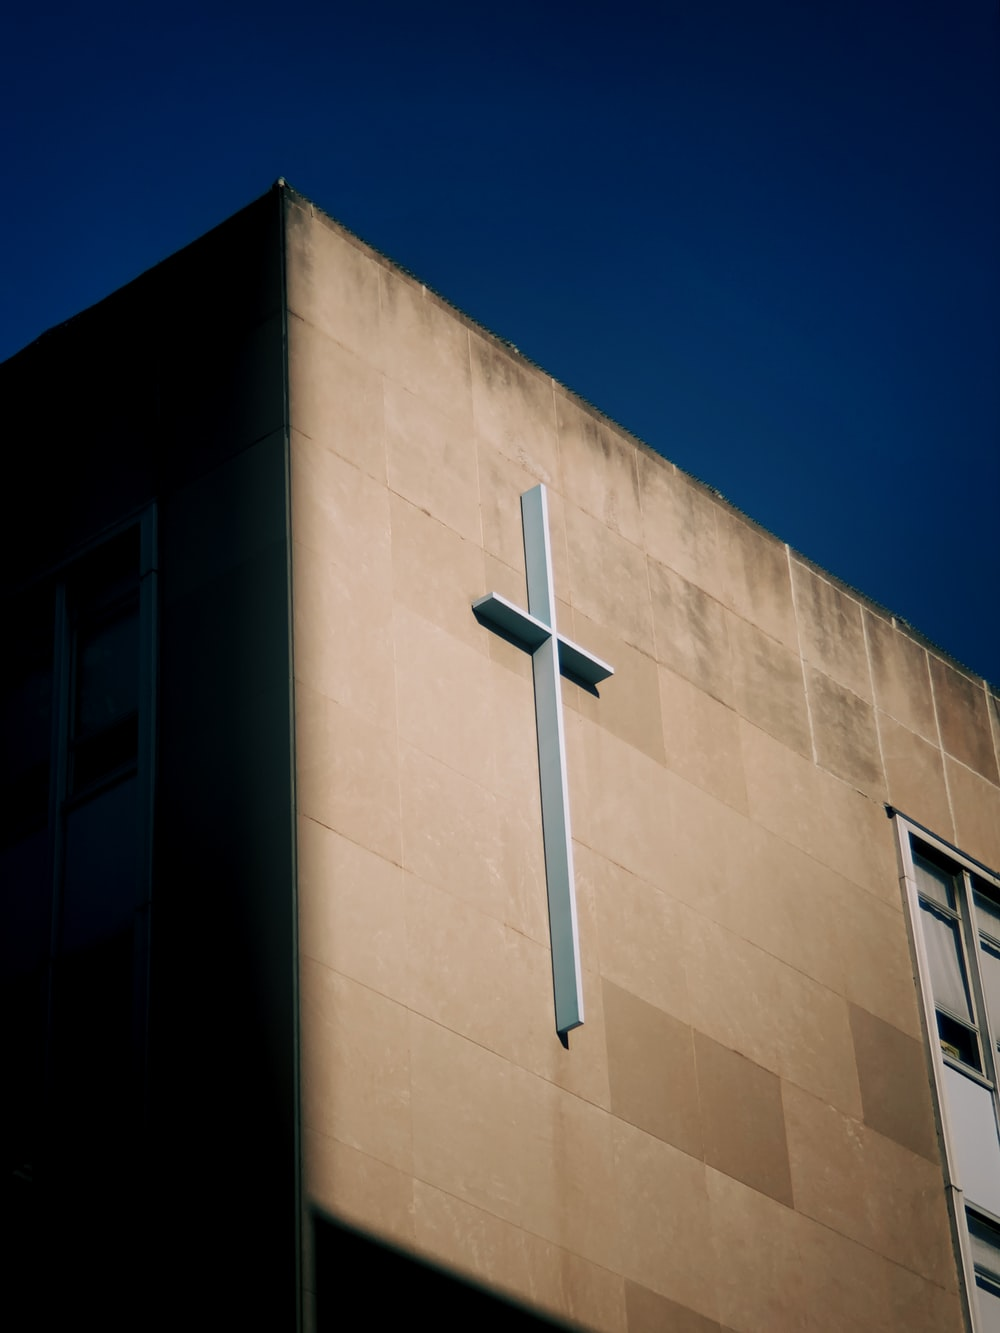 white cross on brown concrete building